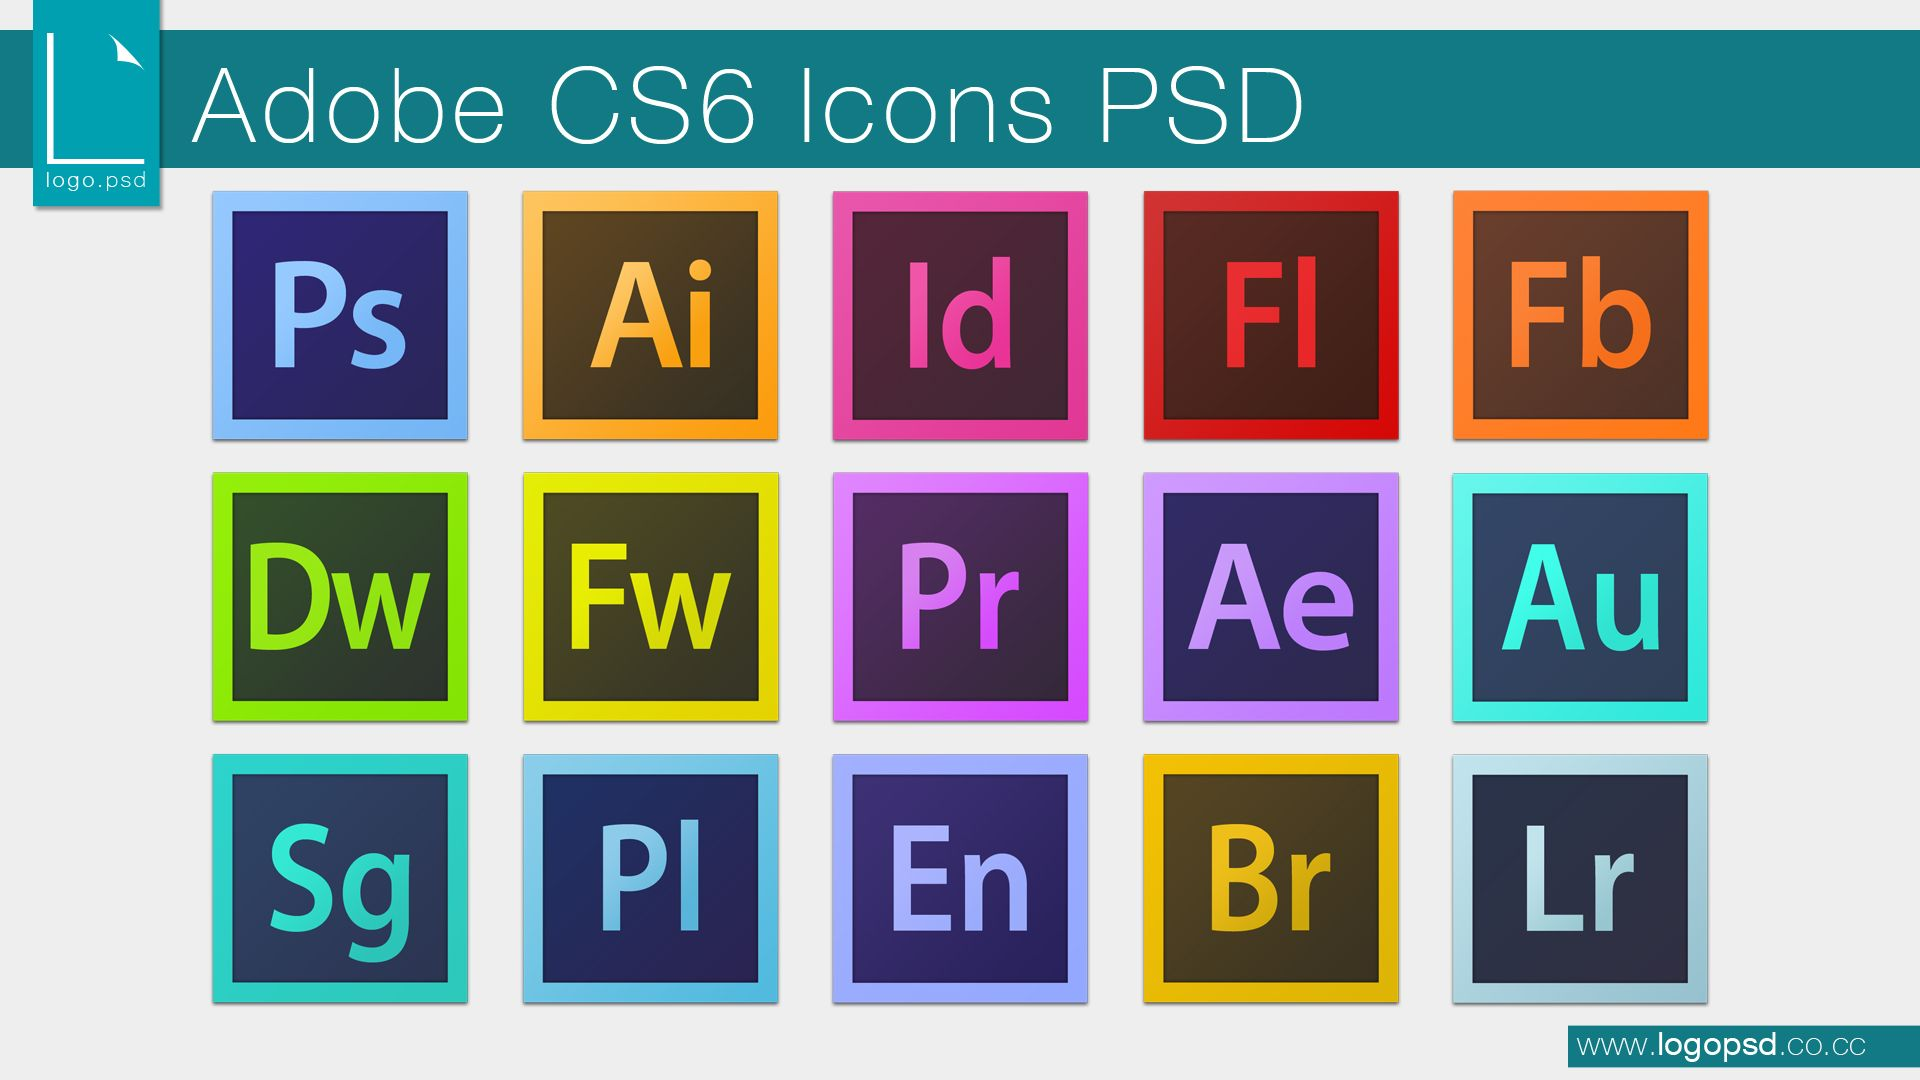 adobe_cs6_icons_fully_layered_psd___now_available_by